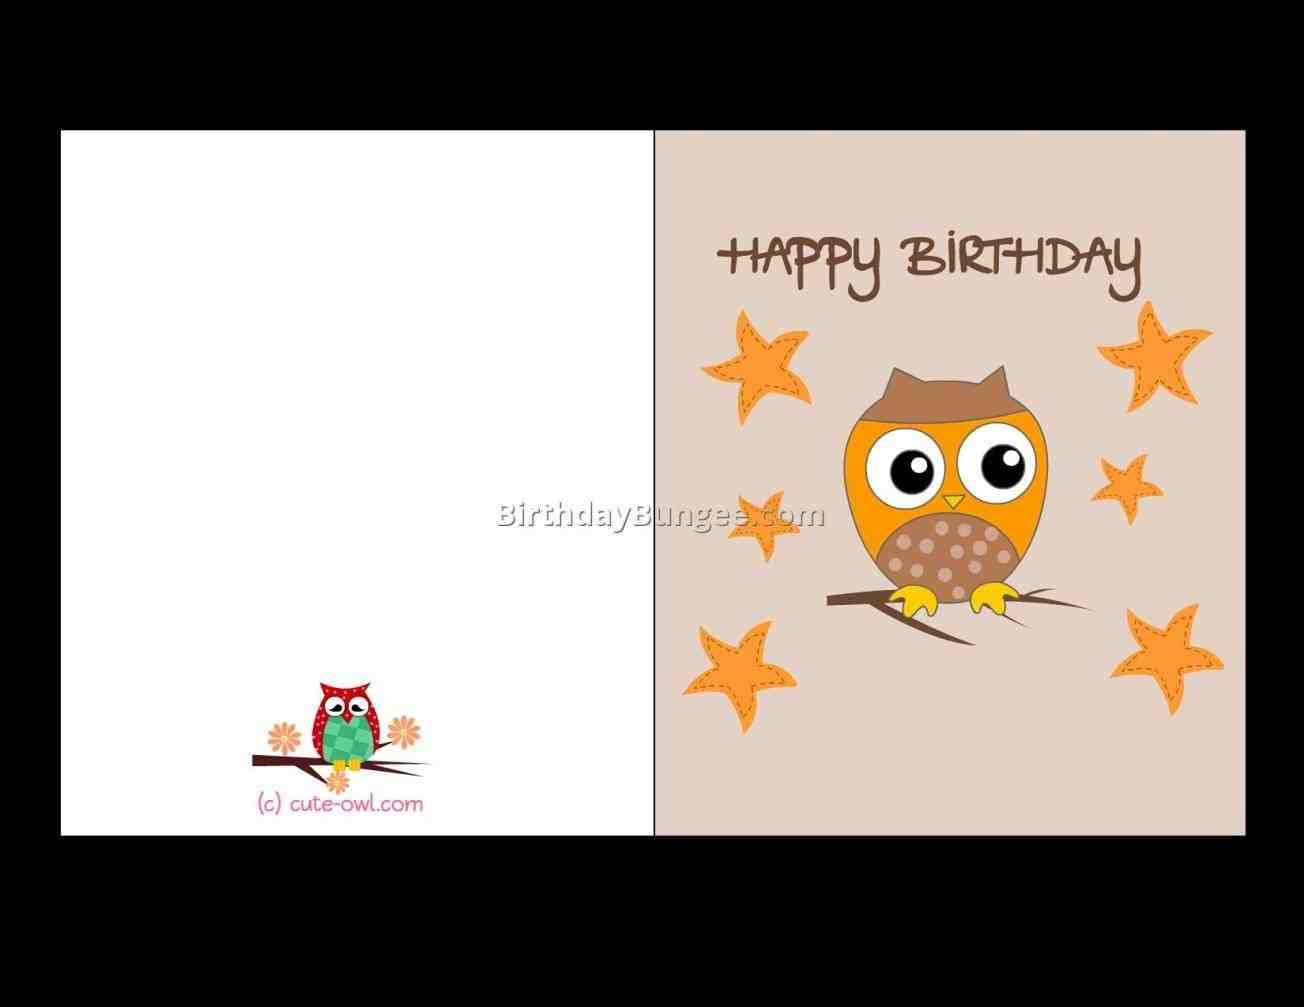 Online birthday cards 5 sensational free online birthday cards online birthday cards 5 sensational free online birthday cards with music ideas stunning free online birthday cards with music beautiful birthday cards bookmarktalkfo Image collections